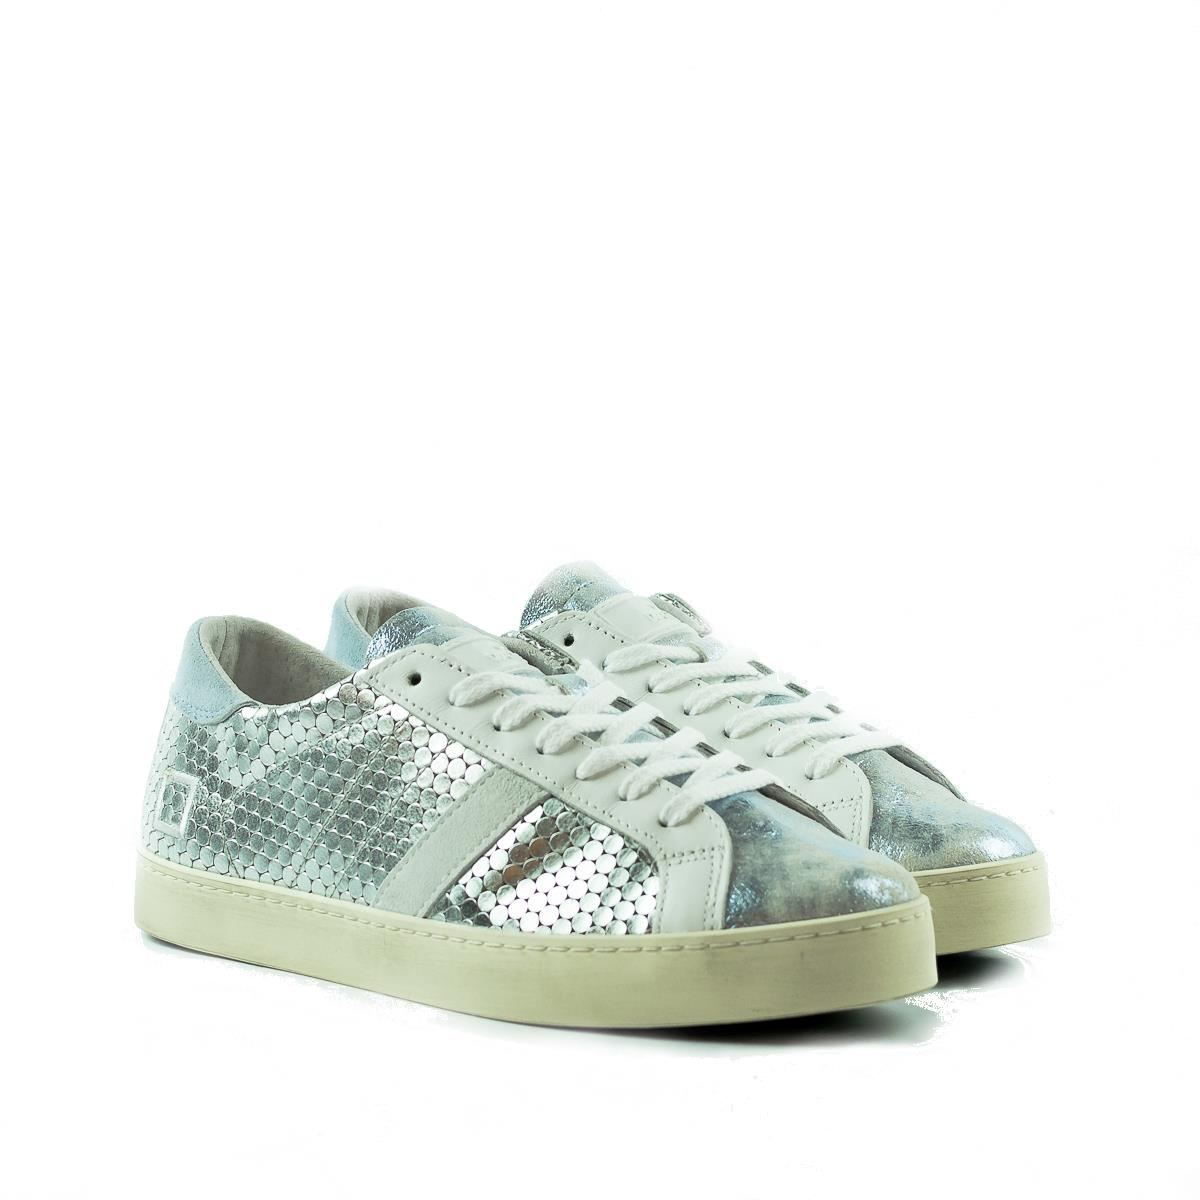 cfa07fb9f3 DATE SNEAKERS HILL LOW PONG LAMINATED SILVER-SKY DONNA | Il Sellaro ...